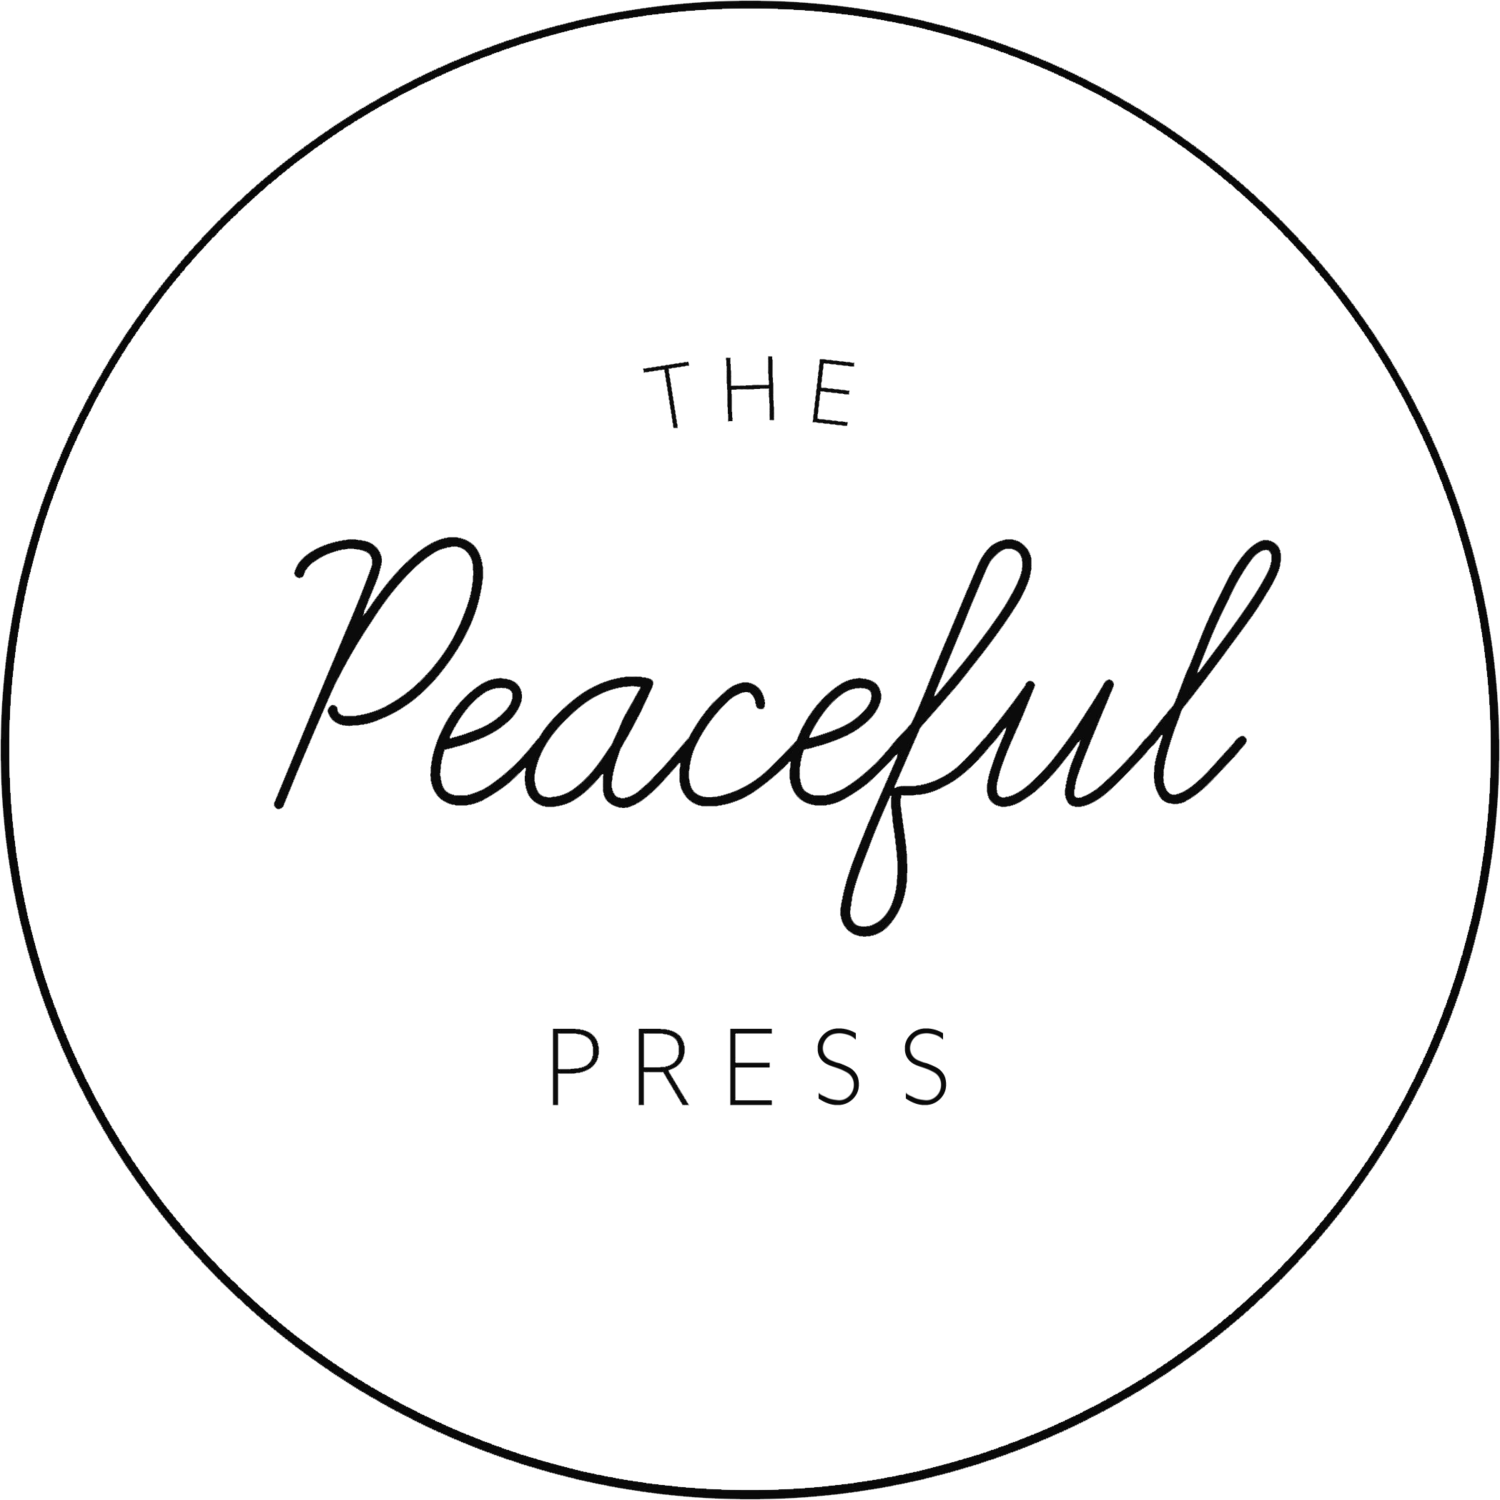 peaceful press logo.png